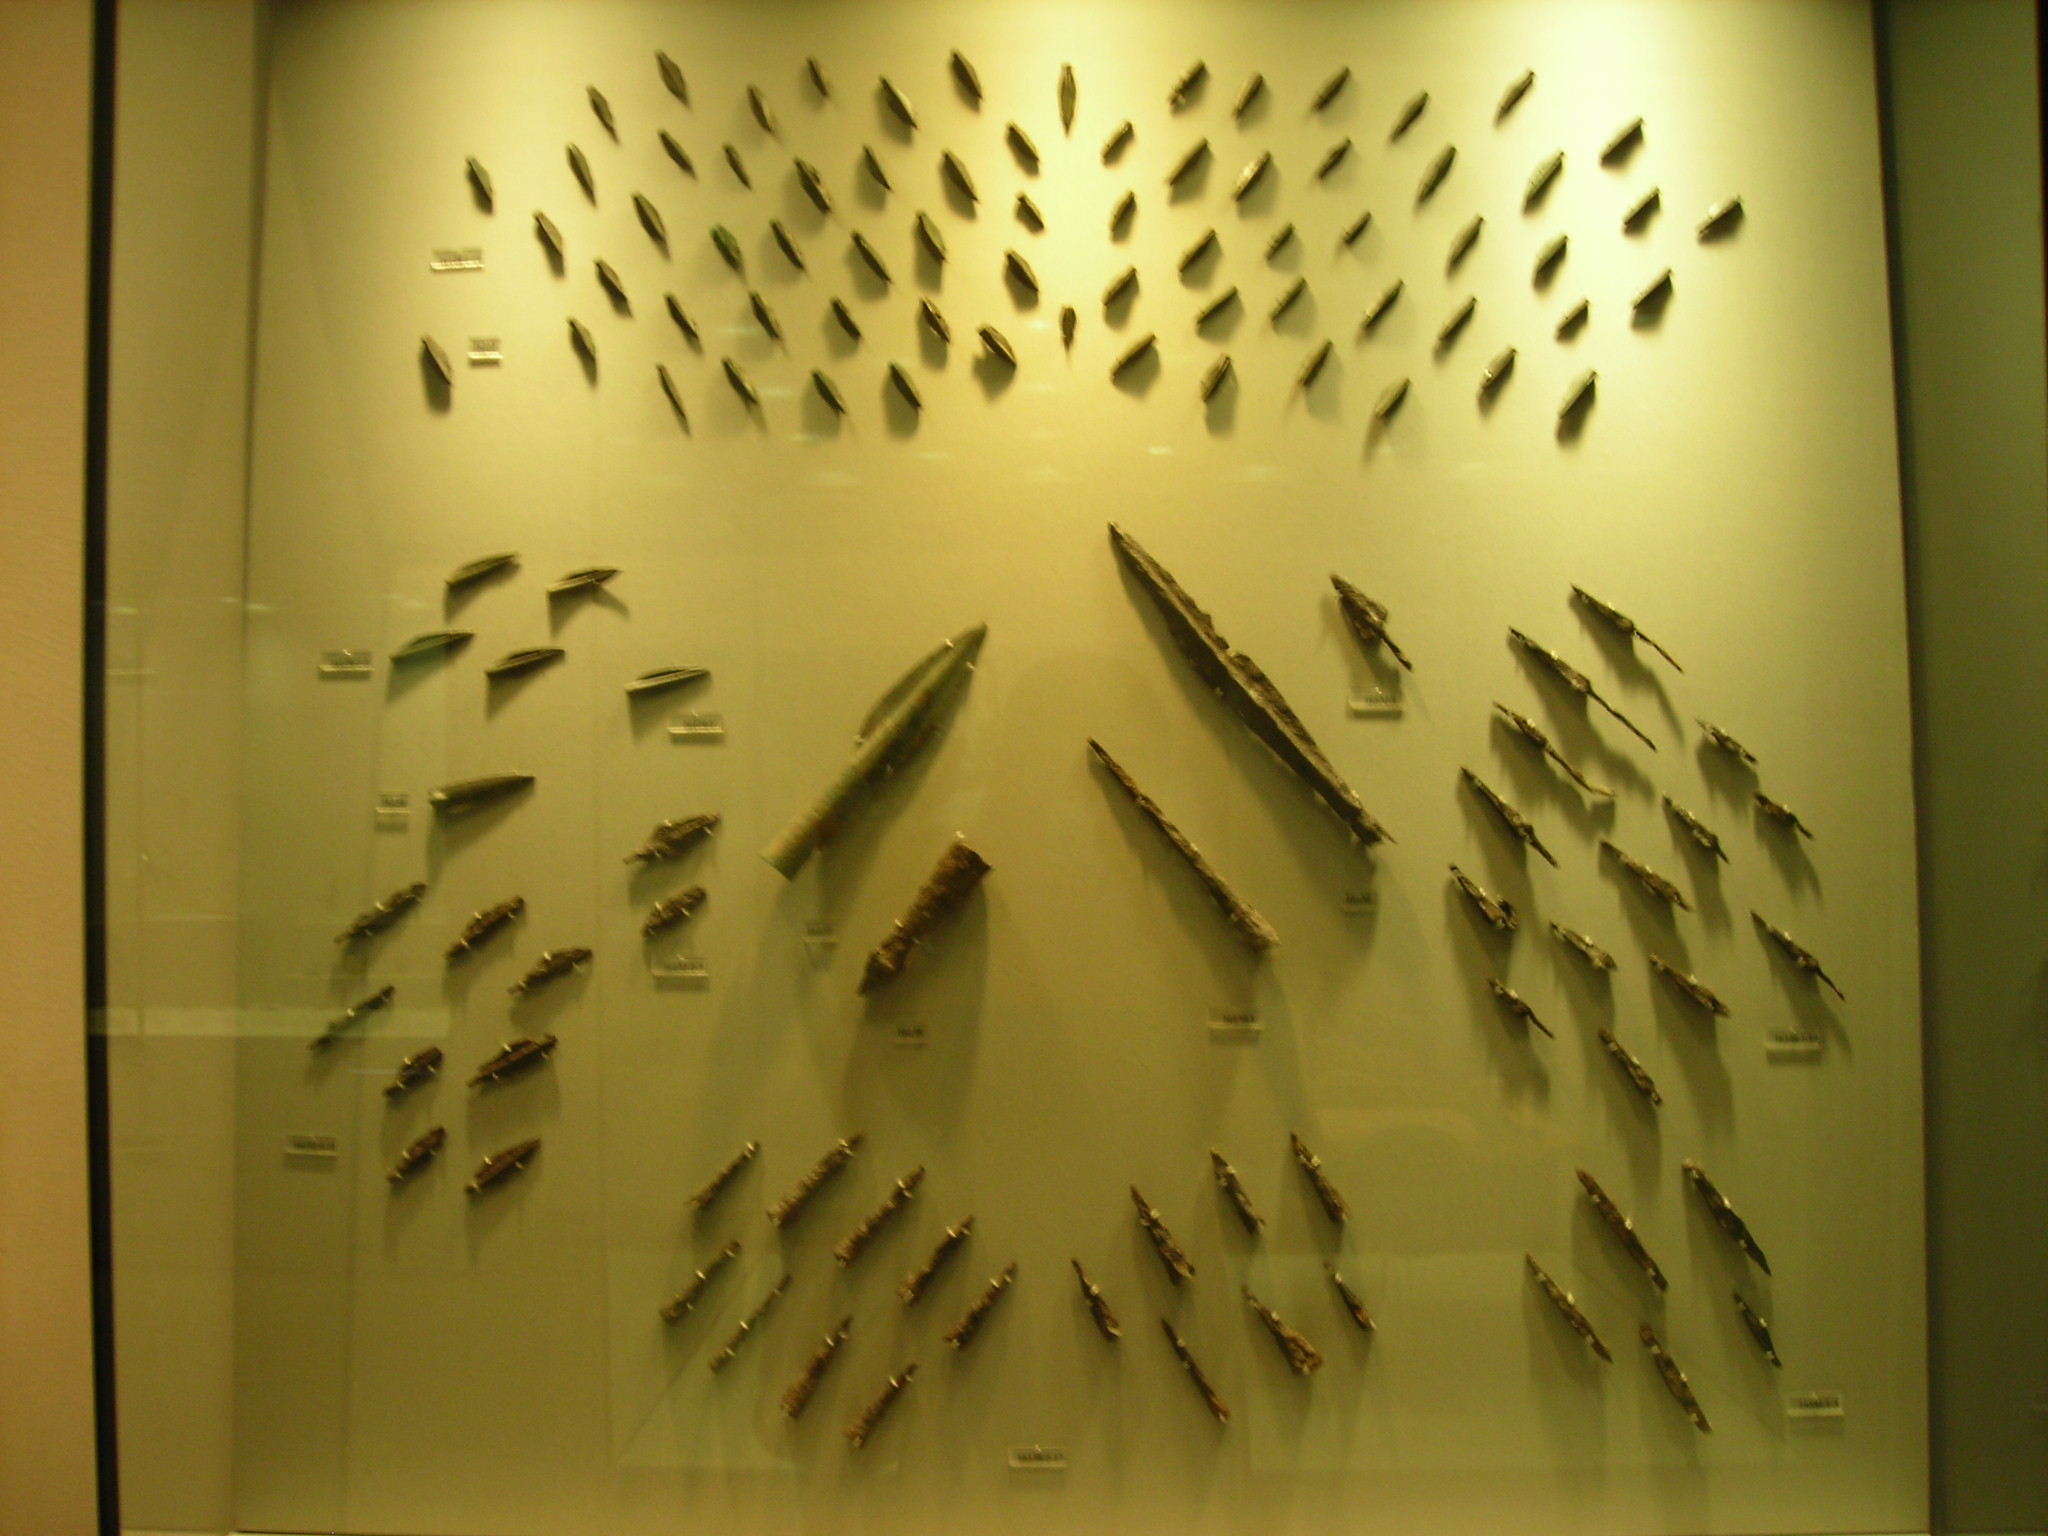 Iron arrowheads and spearheads from Thermopyle